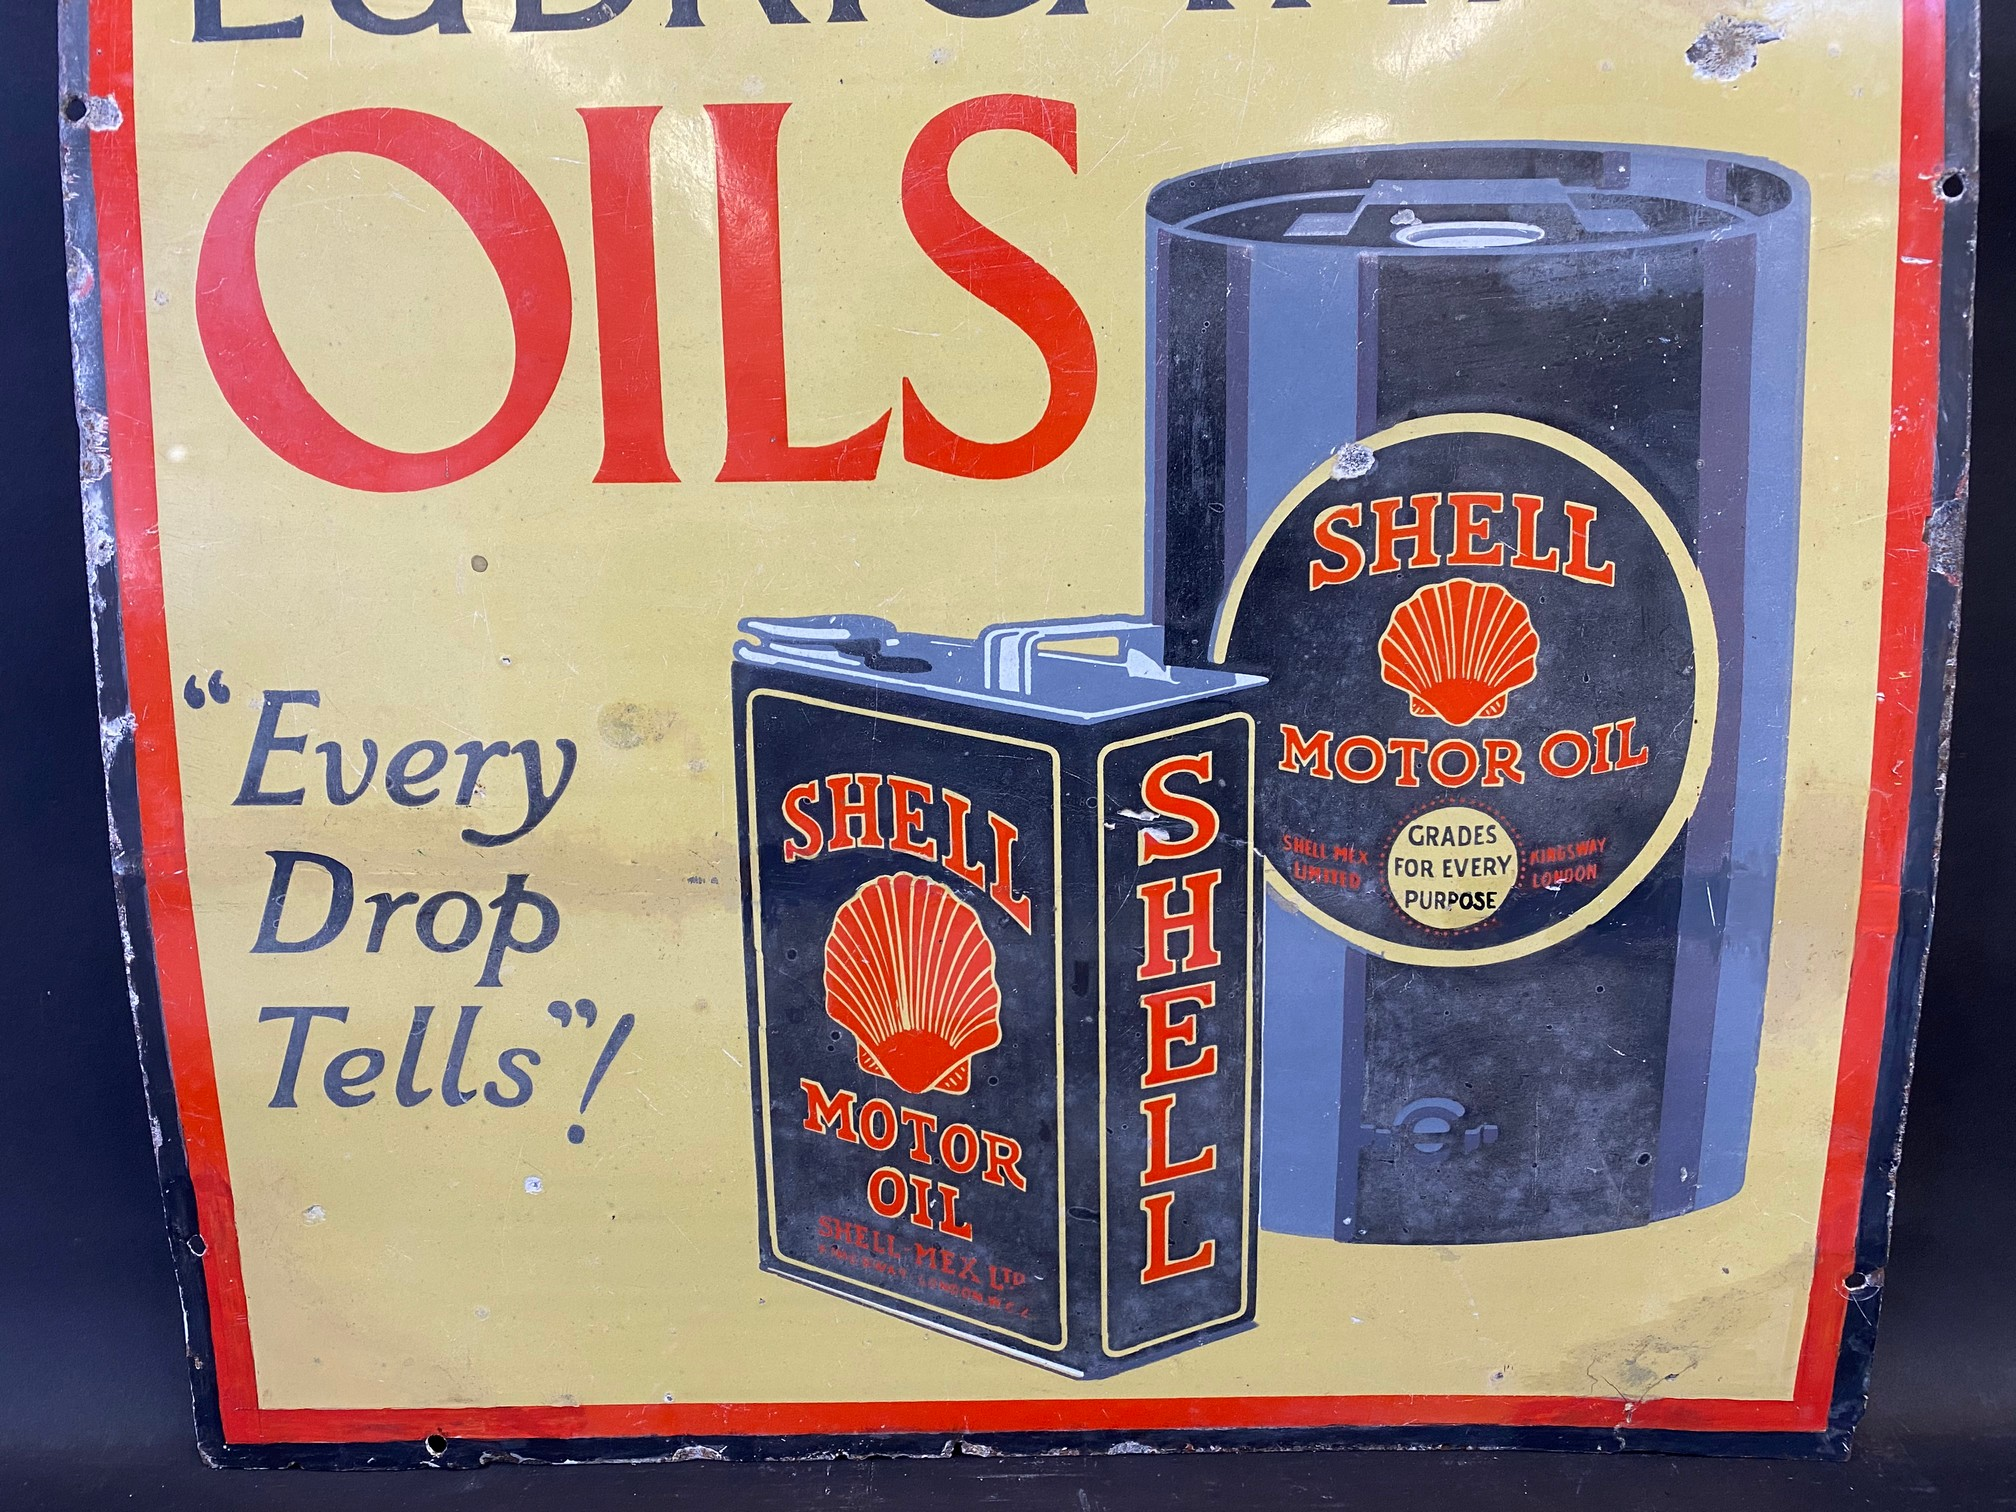 A Shell Lubricating Oils 'Every Drop Tells' pictorial enamel sign with some patches of - Image 4 of 8